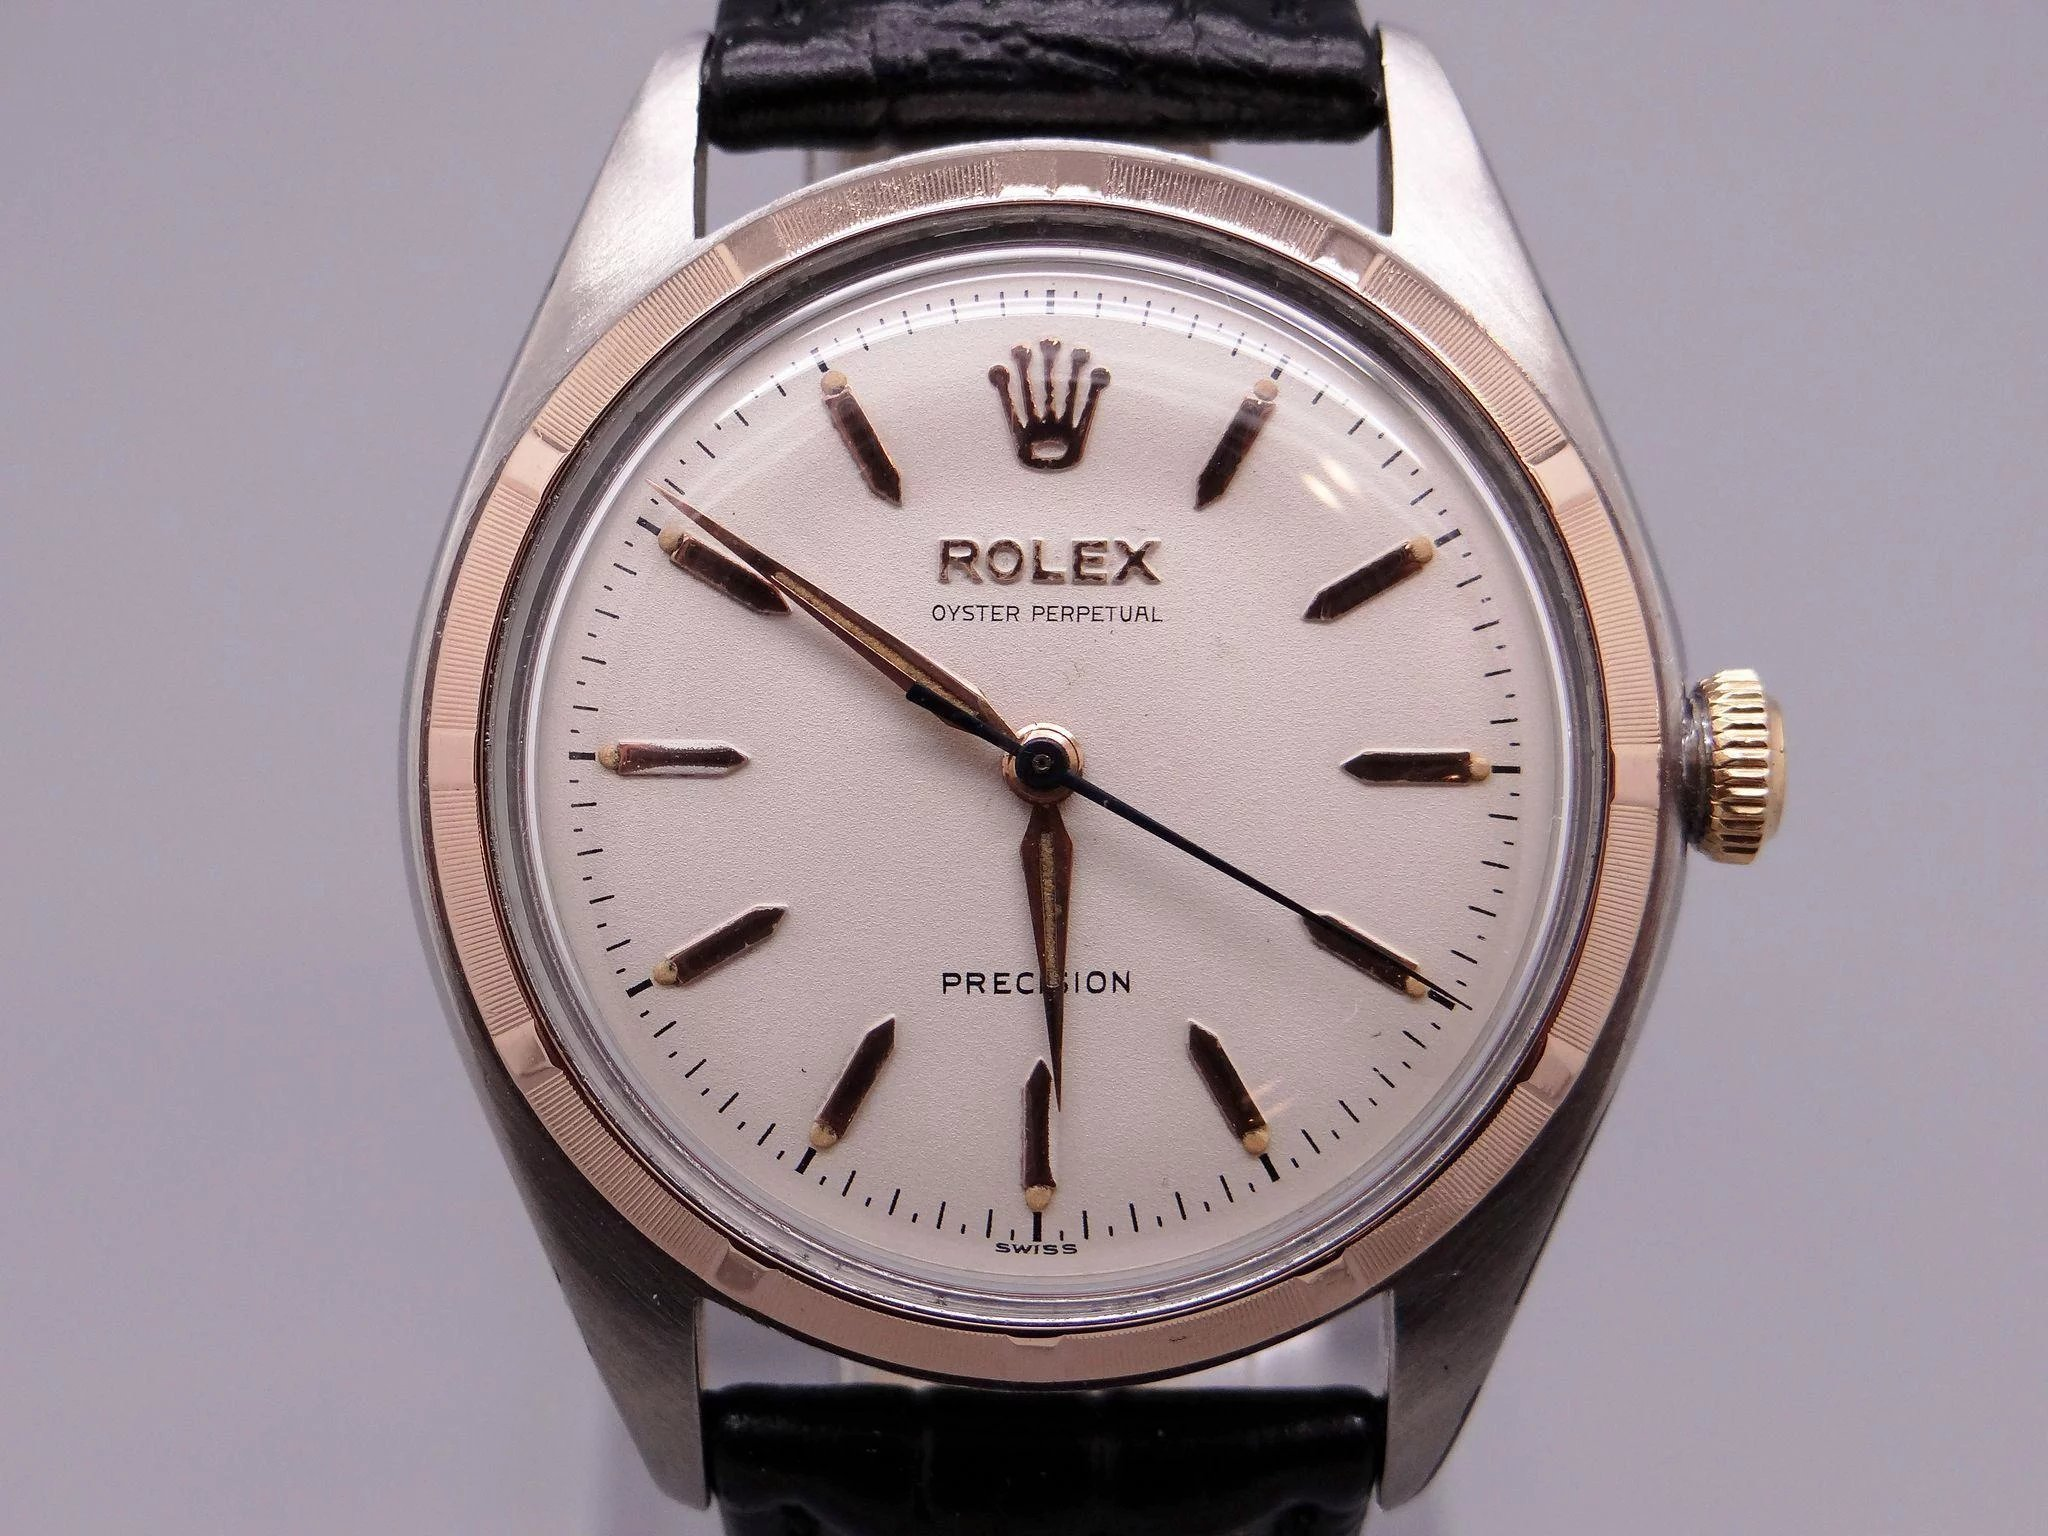 Rolex Oyster Perpetual Rose Gold Rare 1949 Vintage Rolex Oyster Perpetual Big Bubble Steel Rose Gold Watch 5029